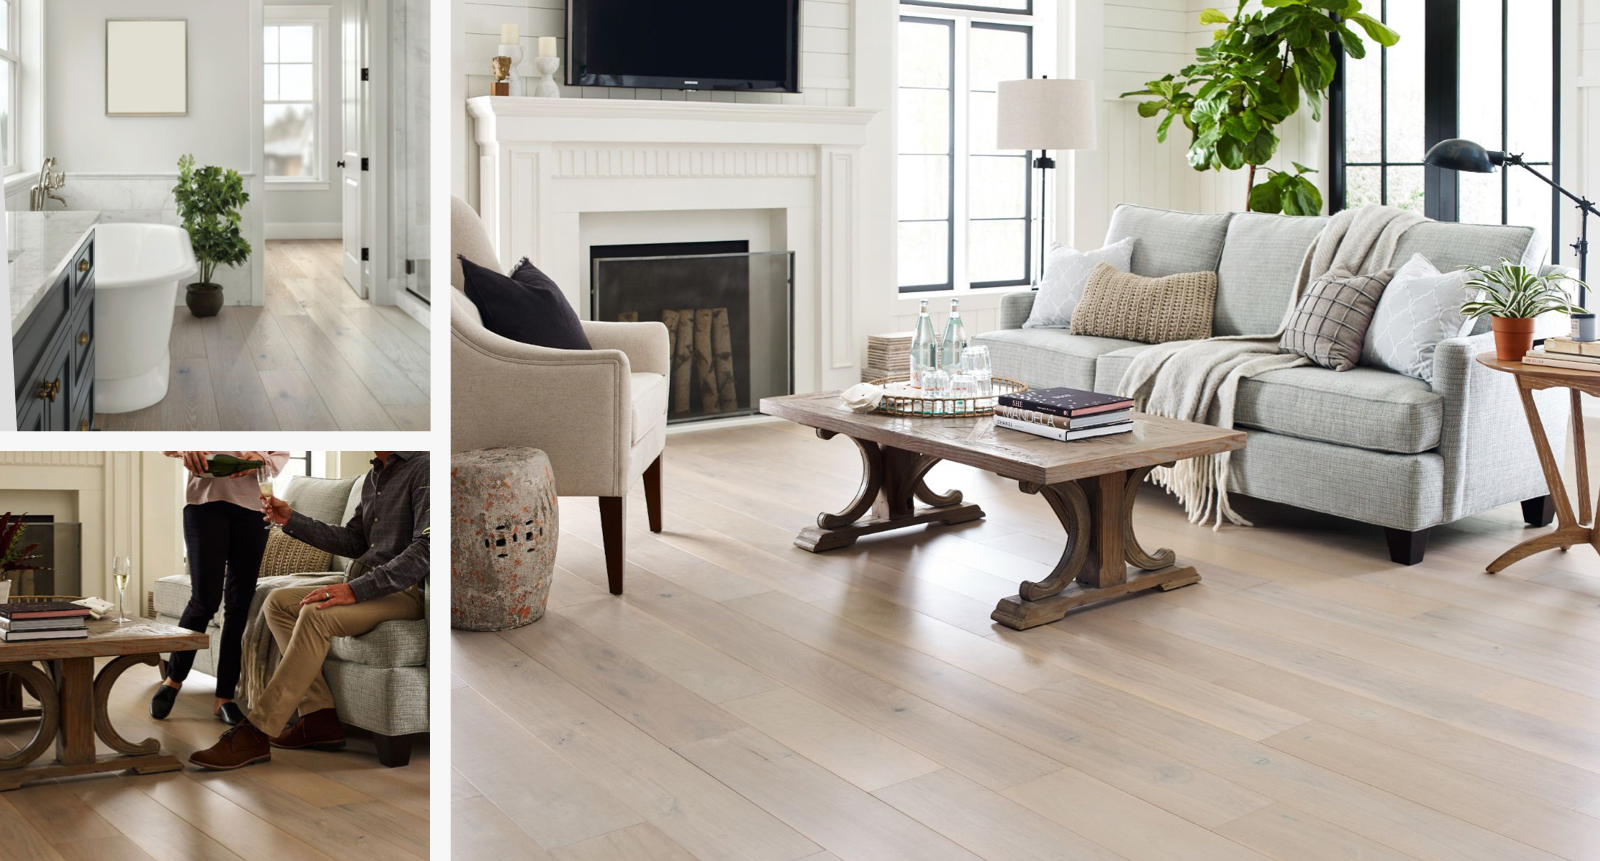 Floorte waterproof hardwood flooring for your home | PDJ Shaw Flooring